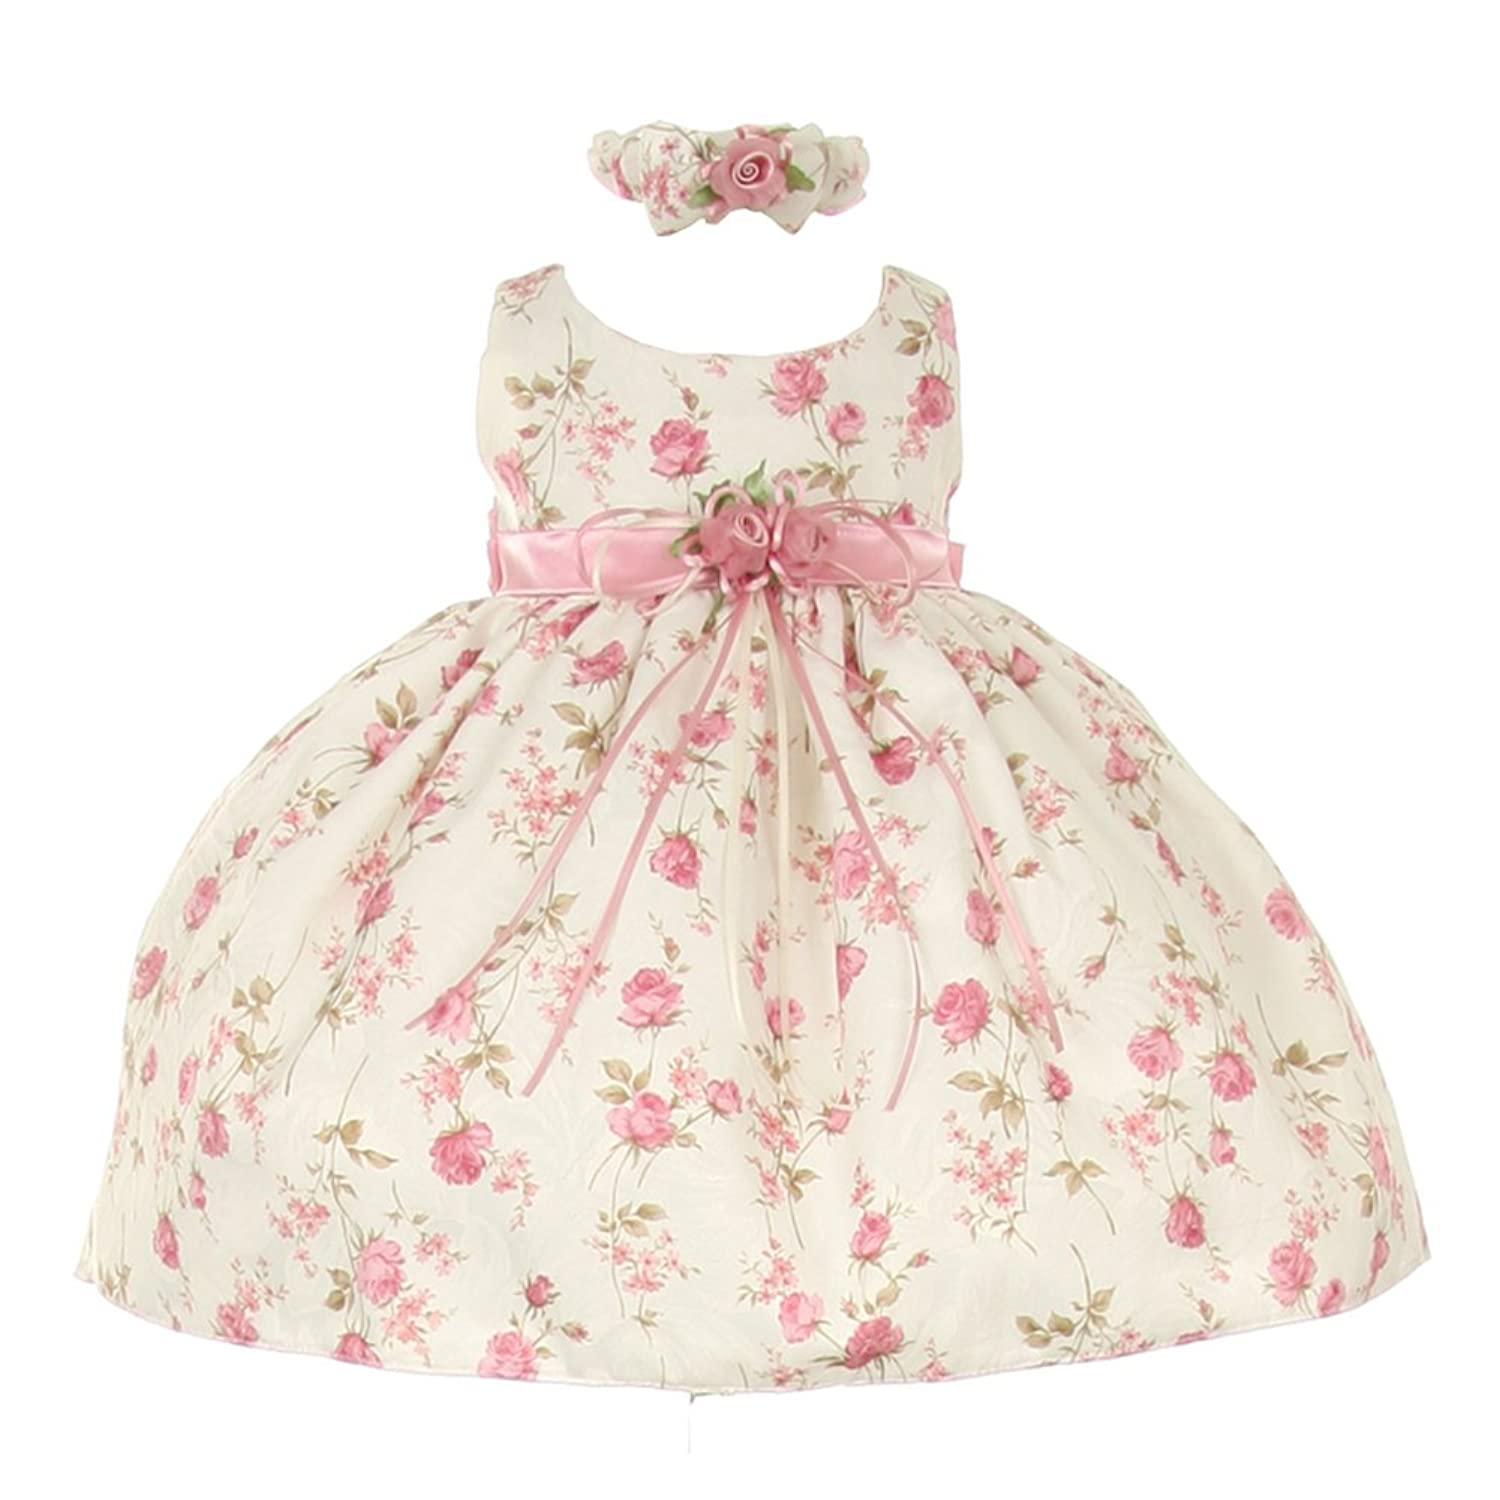 Baby easter dress amazon cinderella couture baby girls pink rose printed negle Choice Image